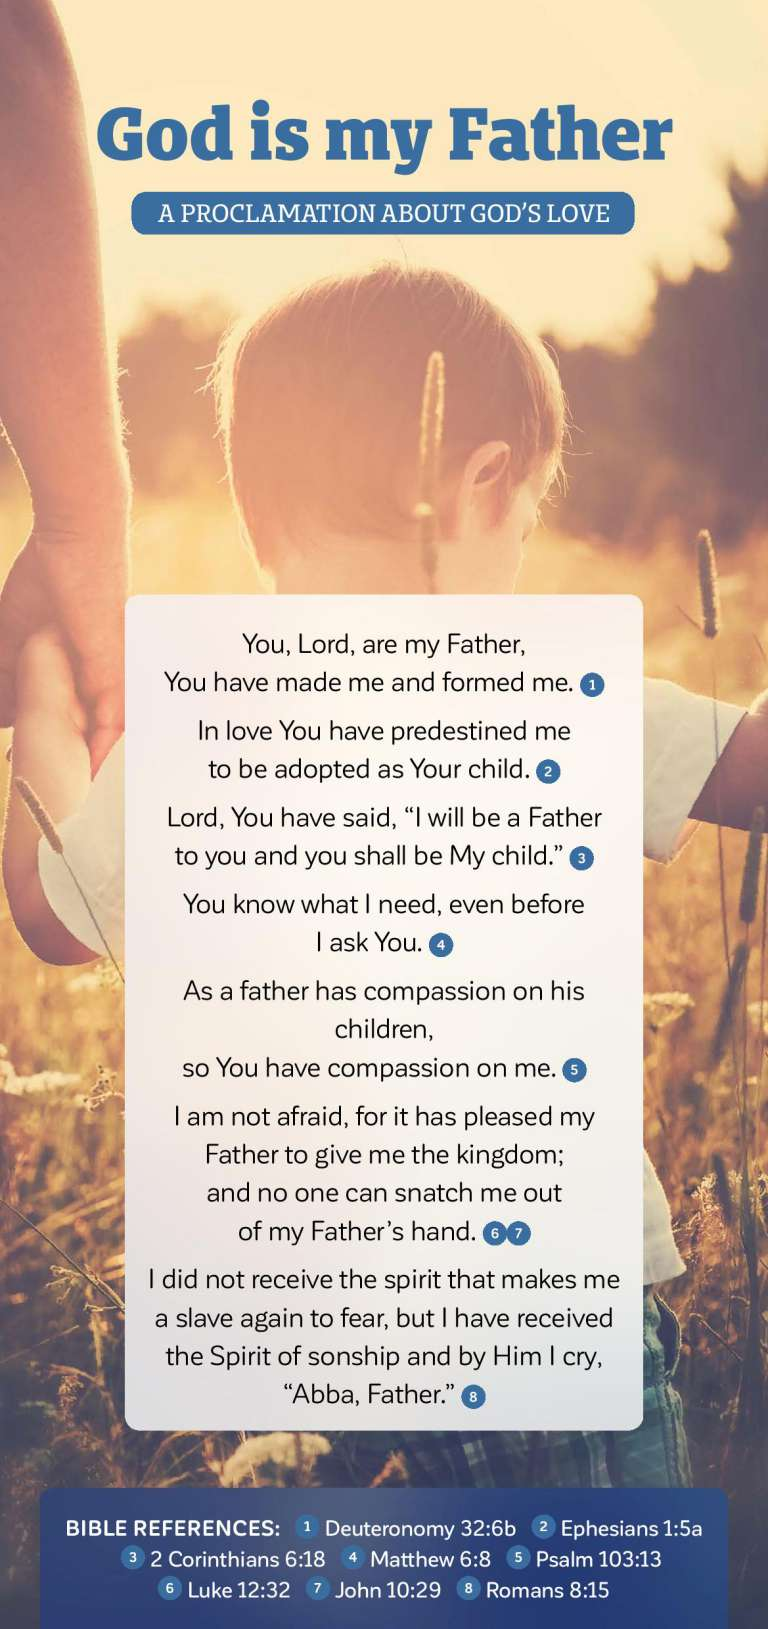 Proclamation - God is my Father